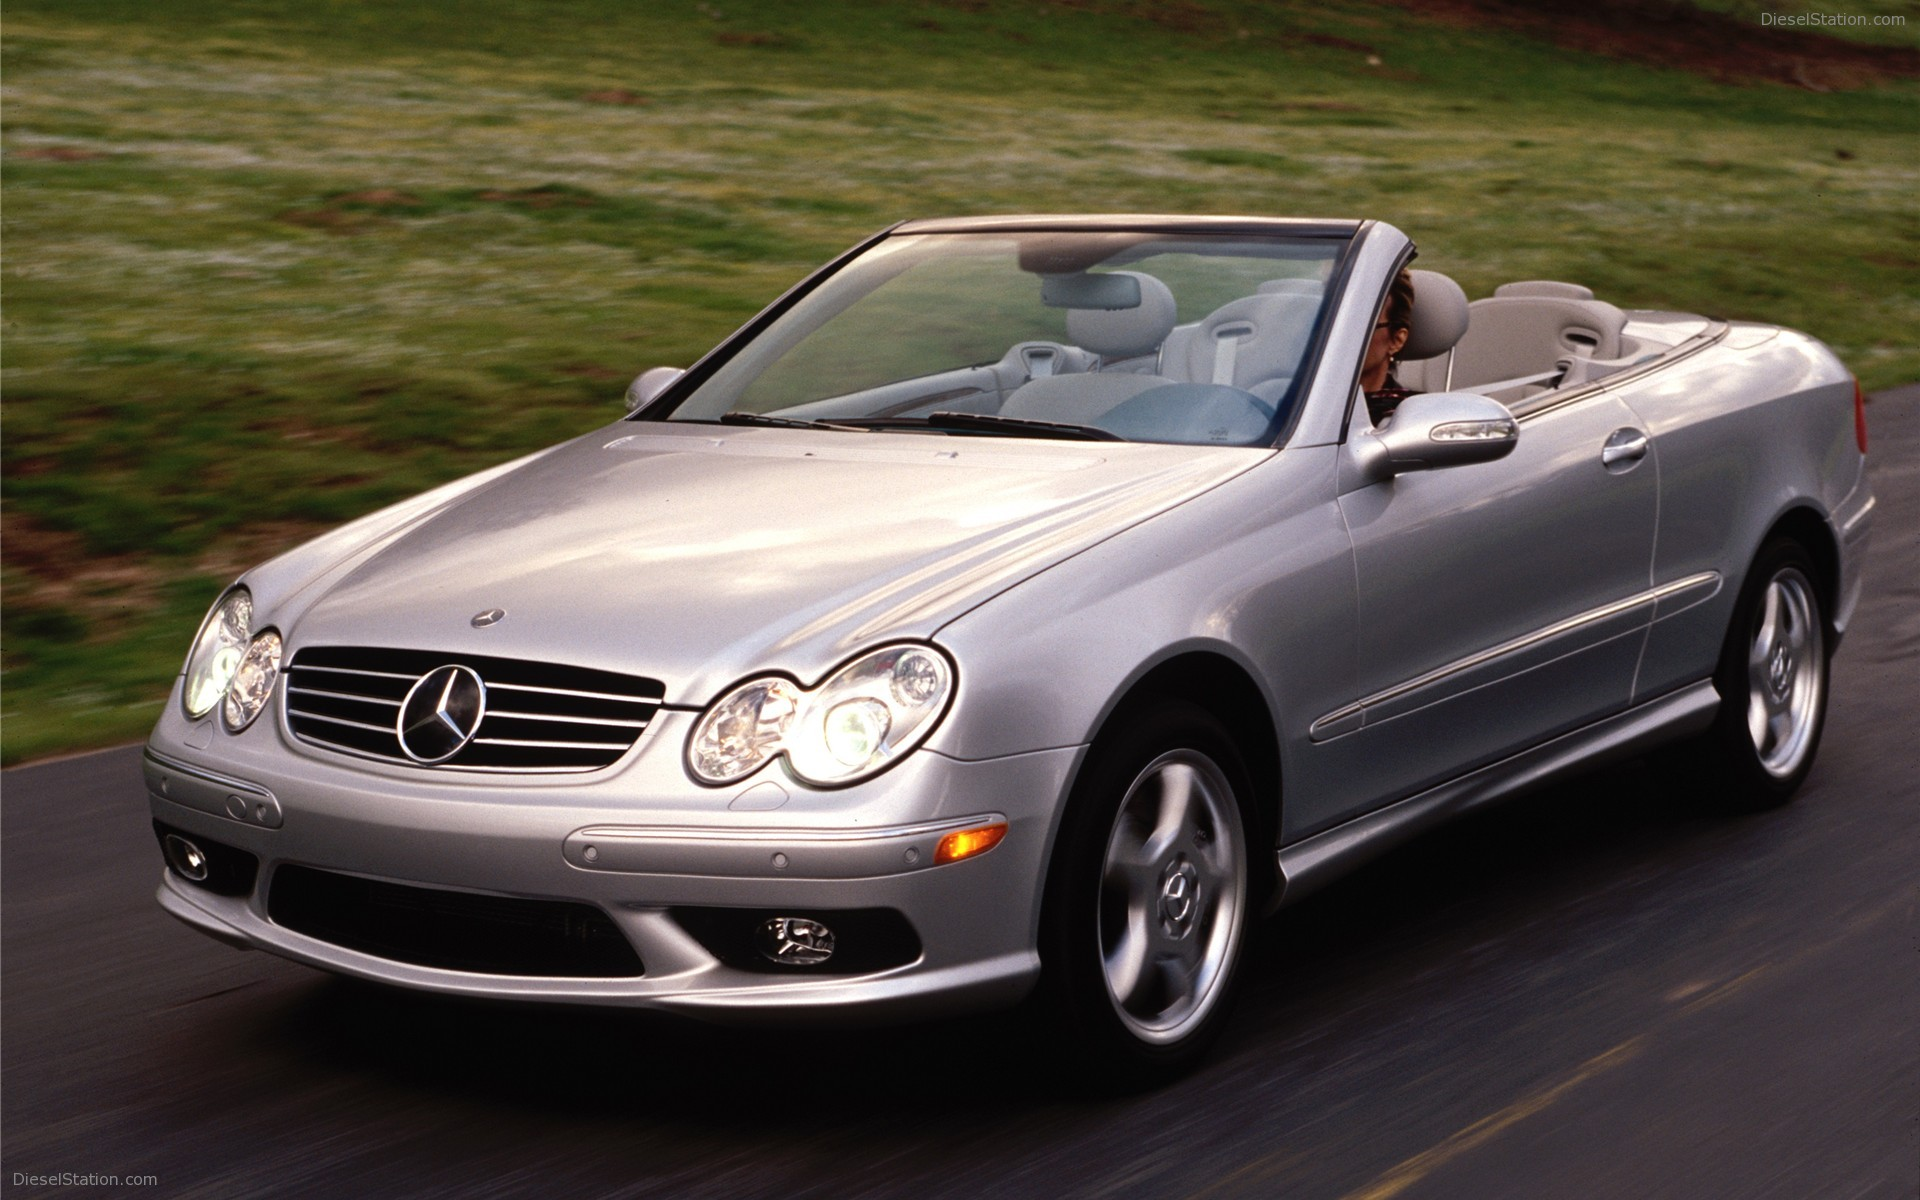 Mercedes benz clk 350 technical details history photos for Mercedes benz clk 500